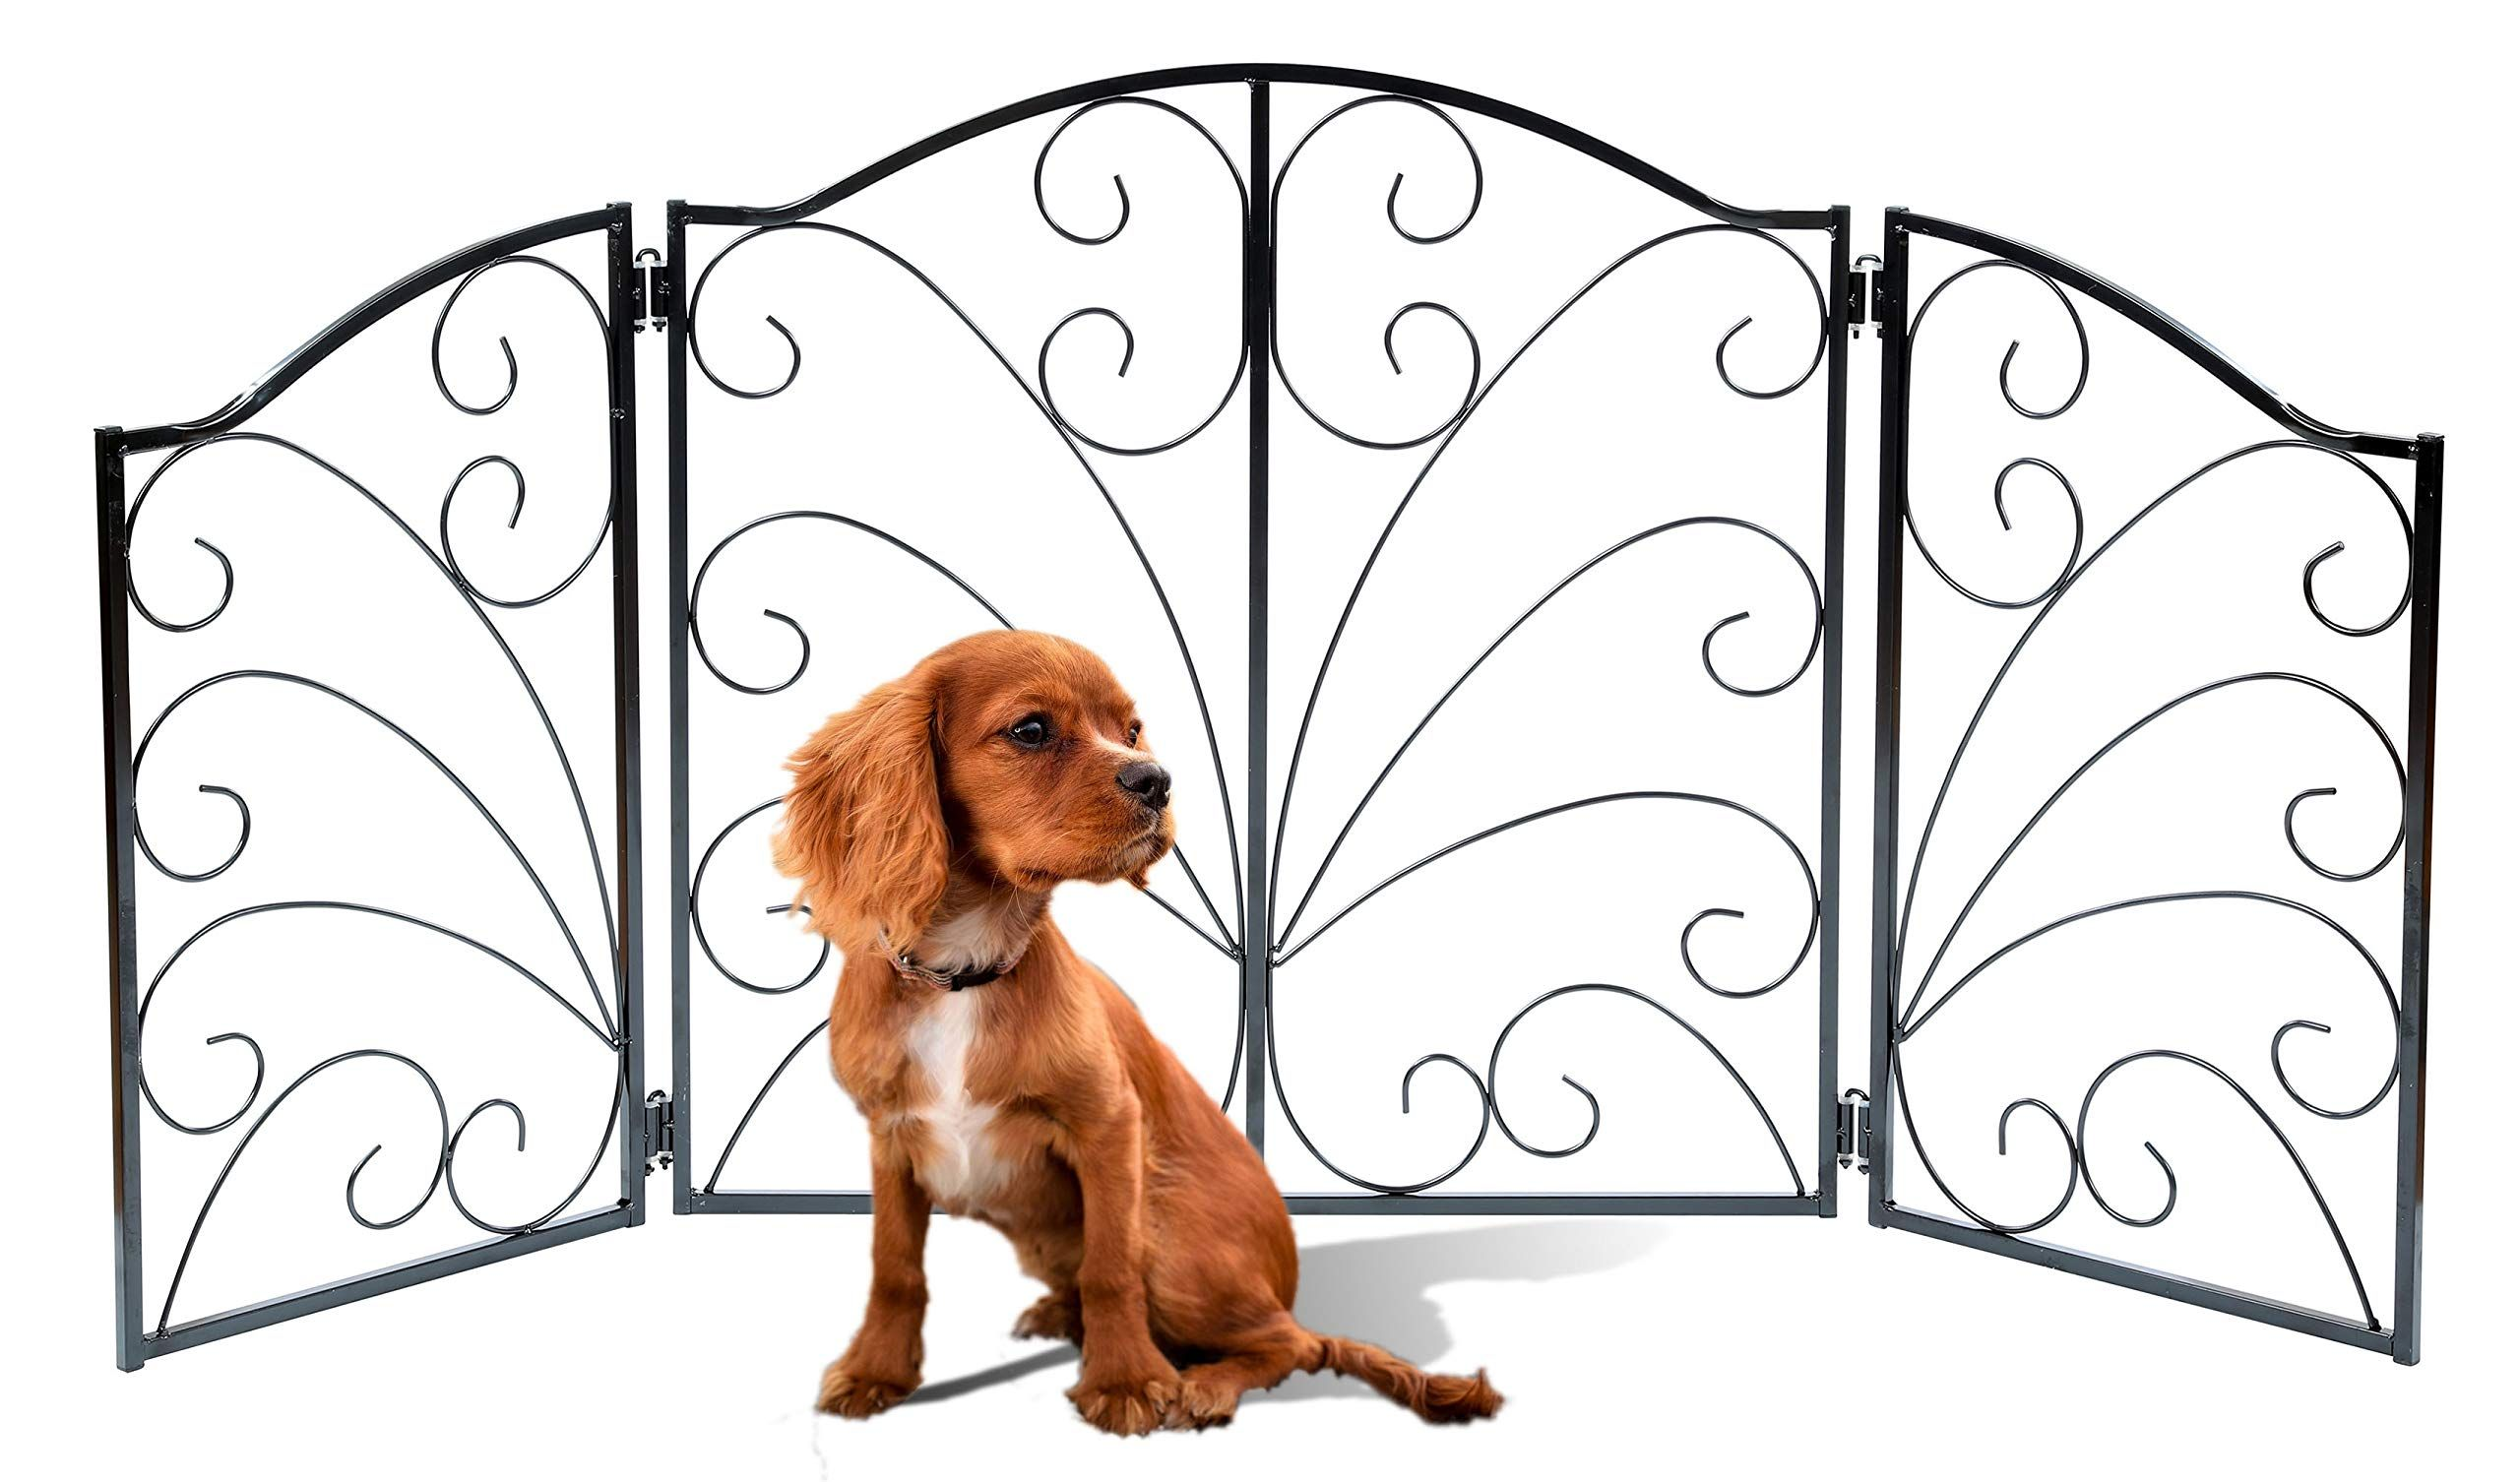 Zoogamo 3 Panel Arched Scroll Design Metal Pet Gate 24 Tall And Expands Up To 48 Wide Durable Lightweight Extra Wide Metal Dog Fence Pet Gate Outdoor Dog Outdoor pet gate extra wide